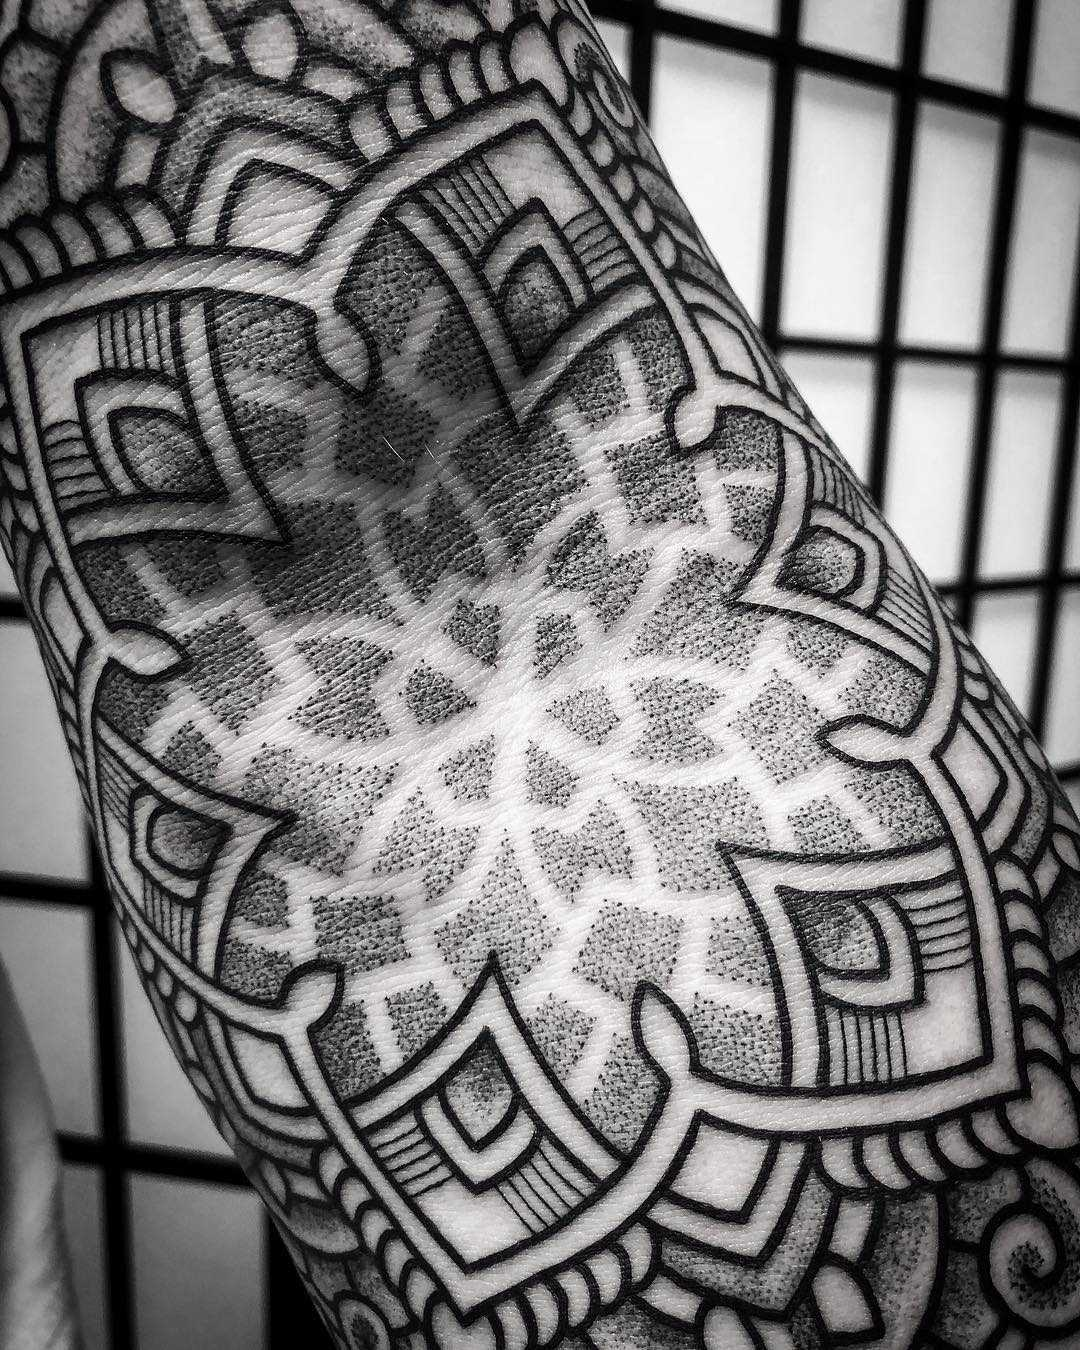 Elbow ditch mandala by tattooist Virginia 108